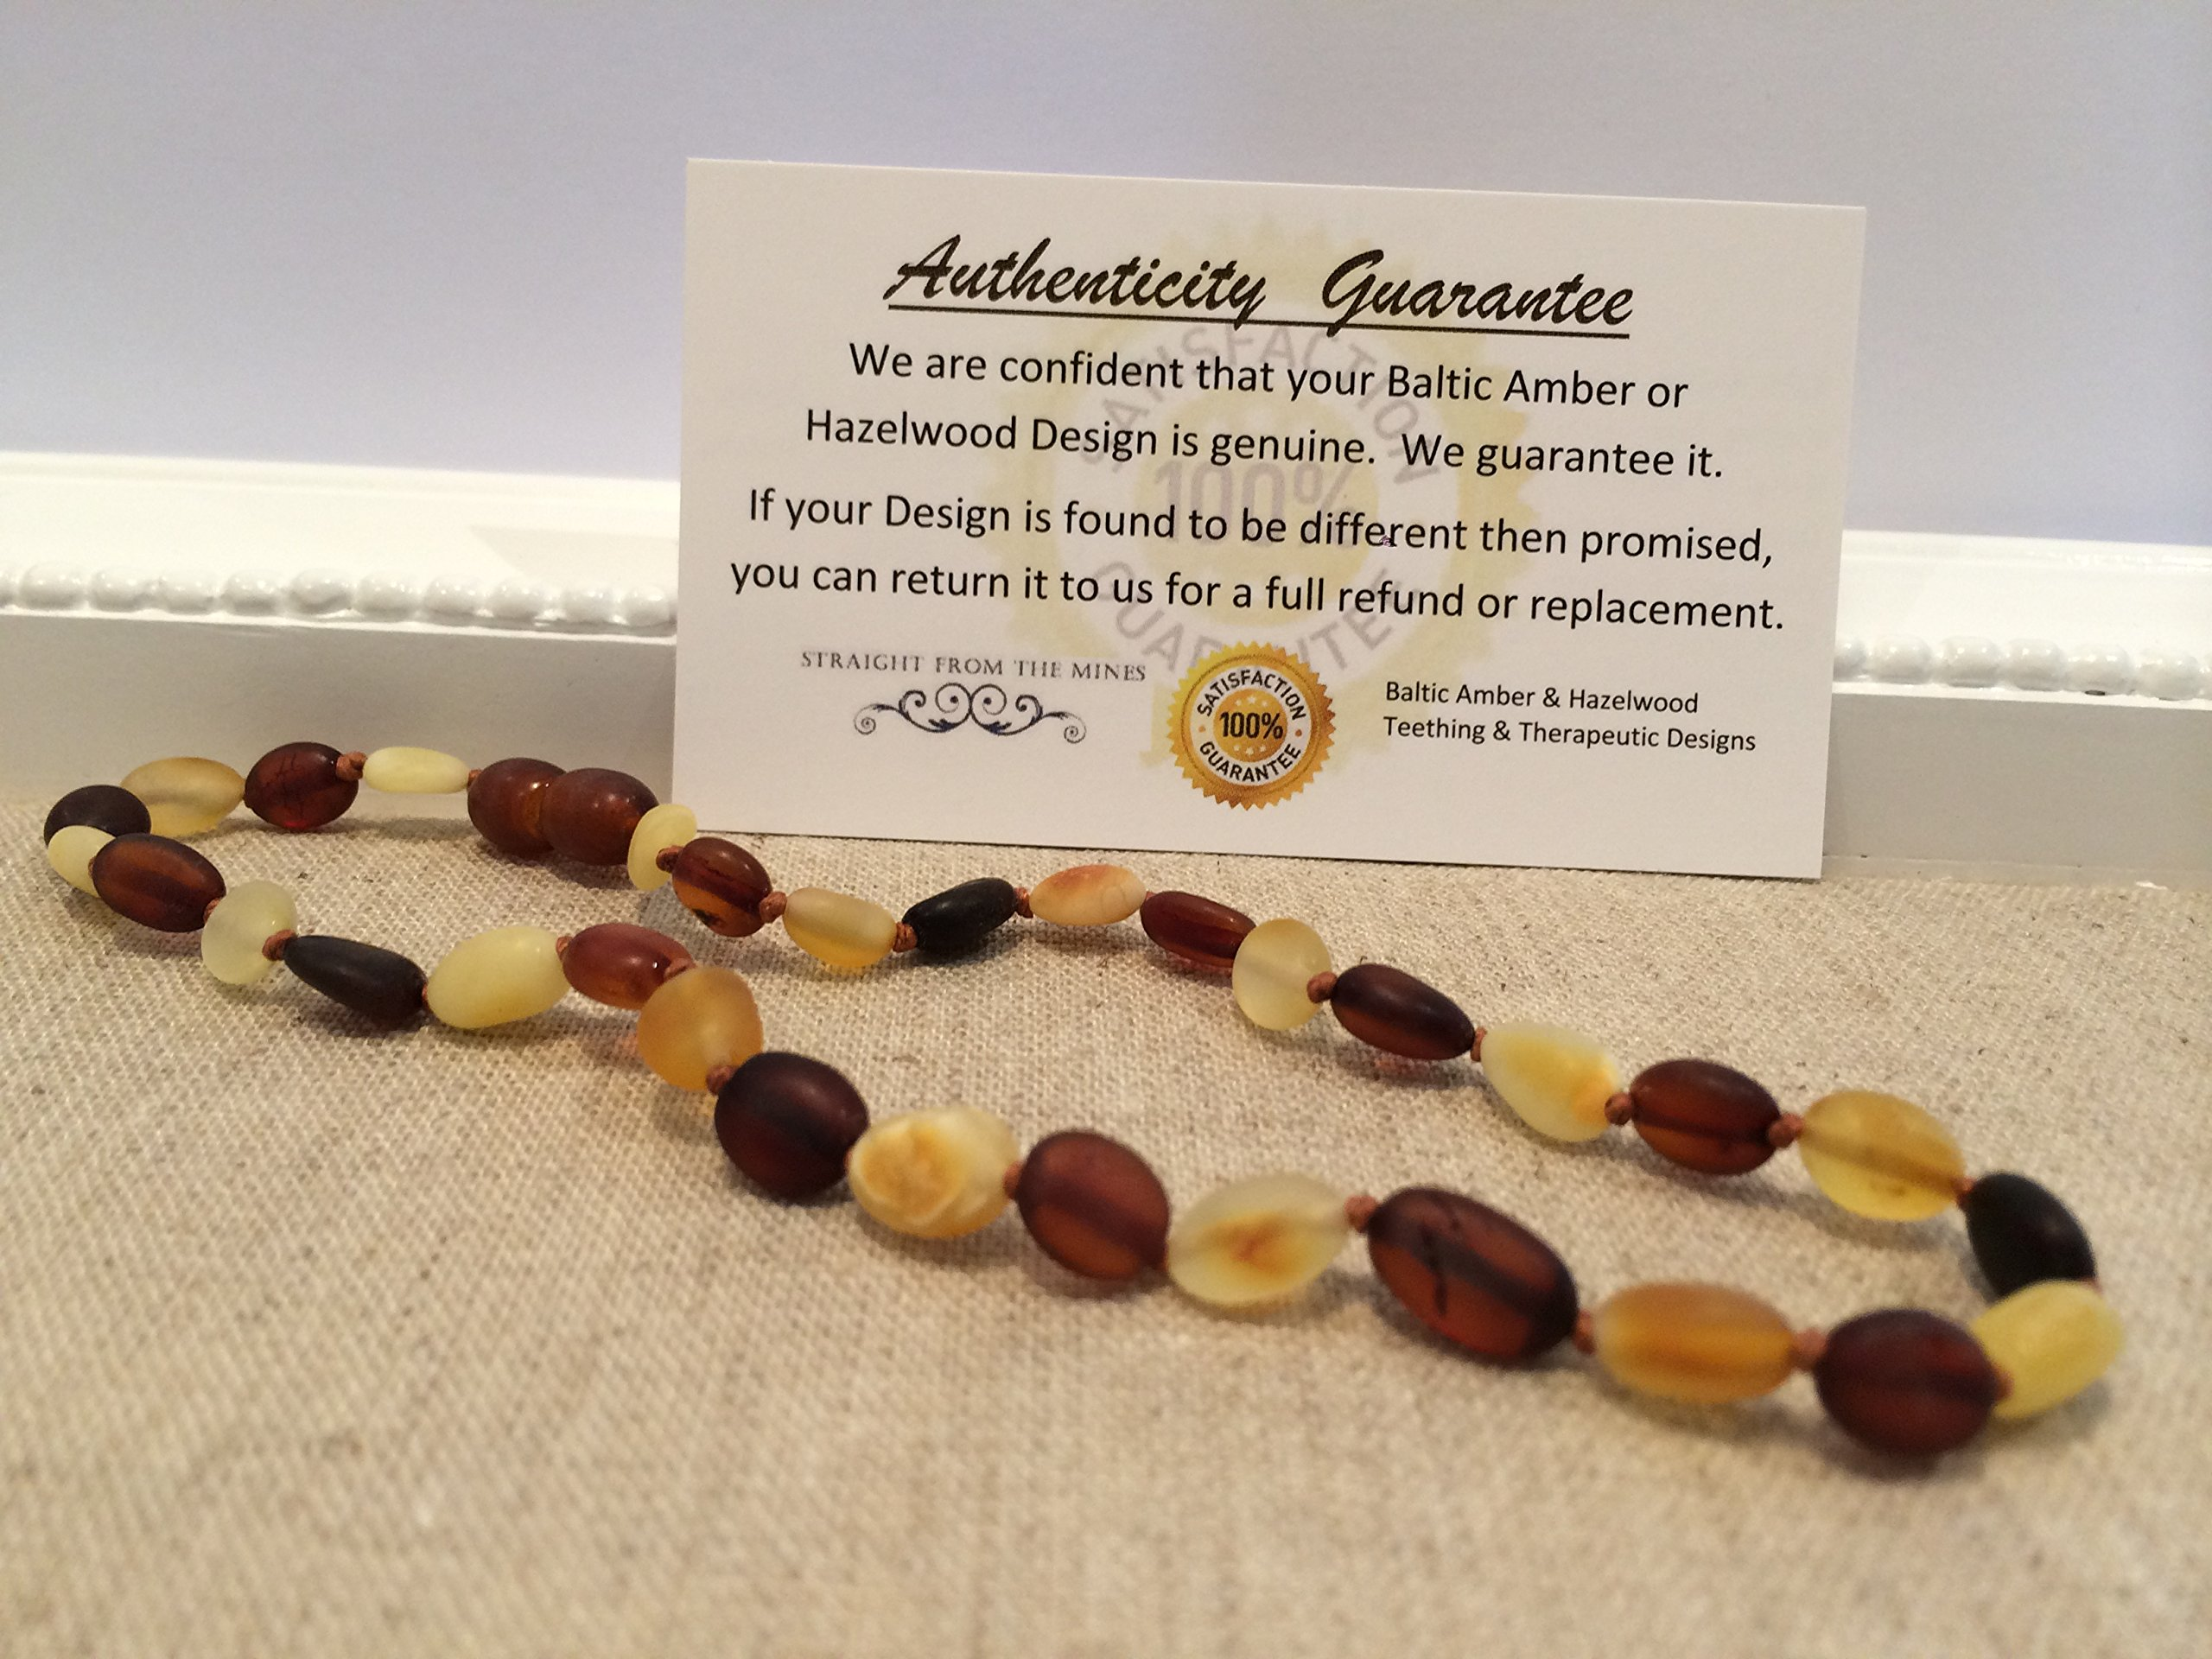 Baltic Amber Teething Necklace for Babies (Unisex) - Anti Flammatory, Drooling & Teething Pain Reduce Properties - Certificated Natural Oval Baltic Jewelry with the Highest Quality Guaranteed. Easy to Fastens with a Twist-in Screw Clasp Mothers Approved R